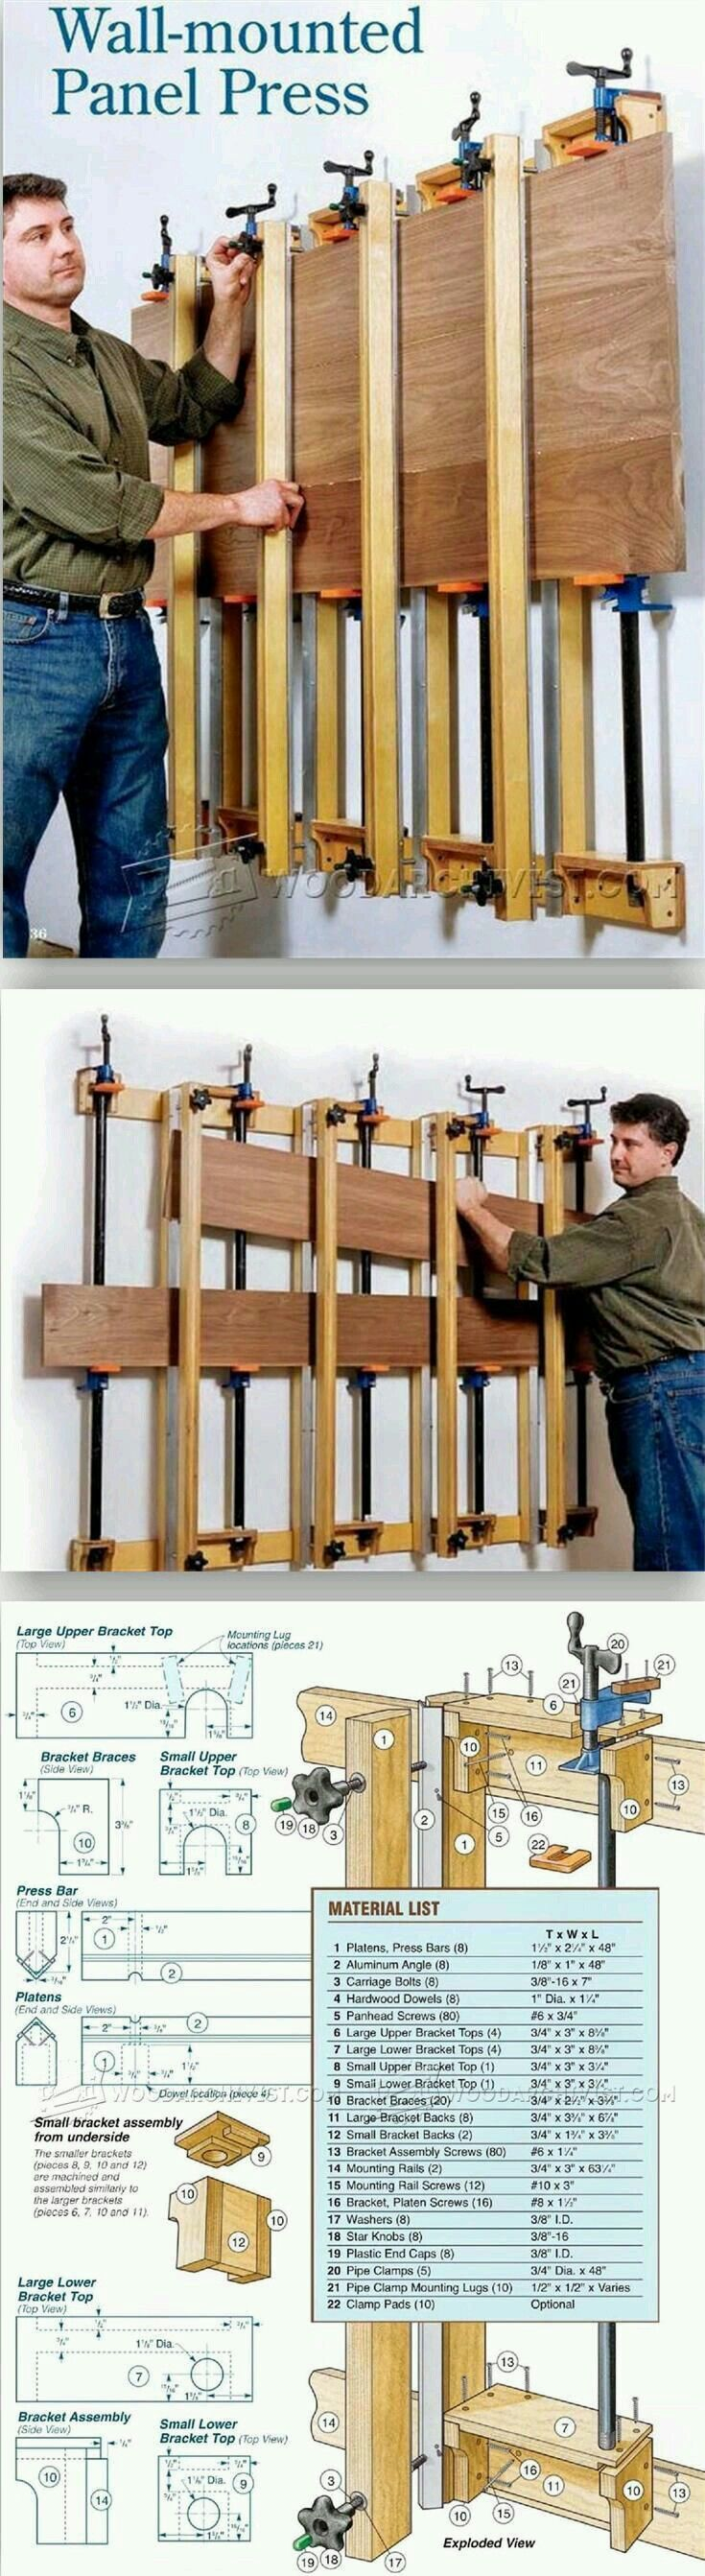 Gluing board together